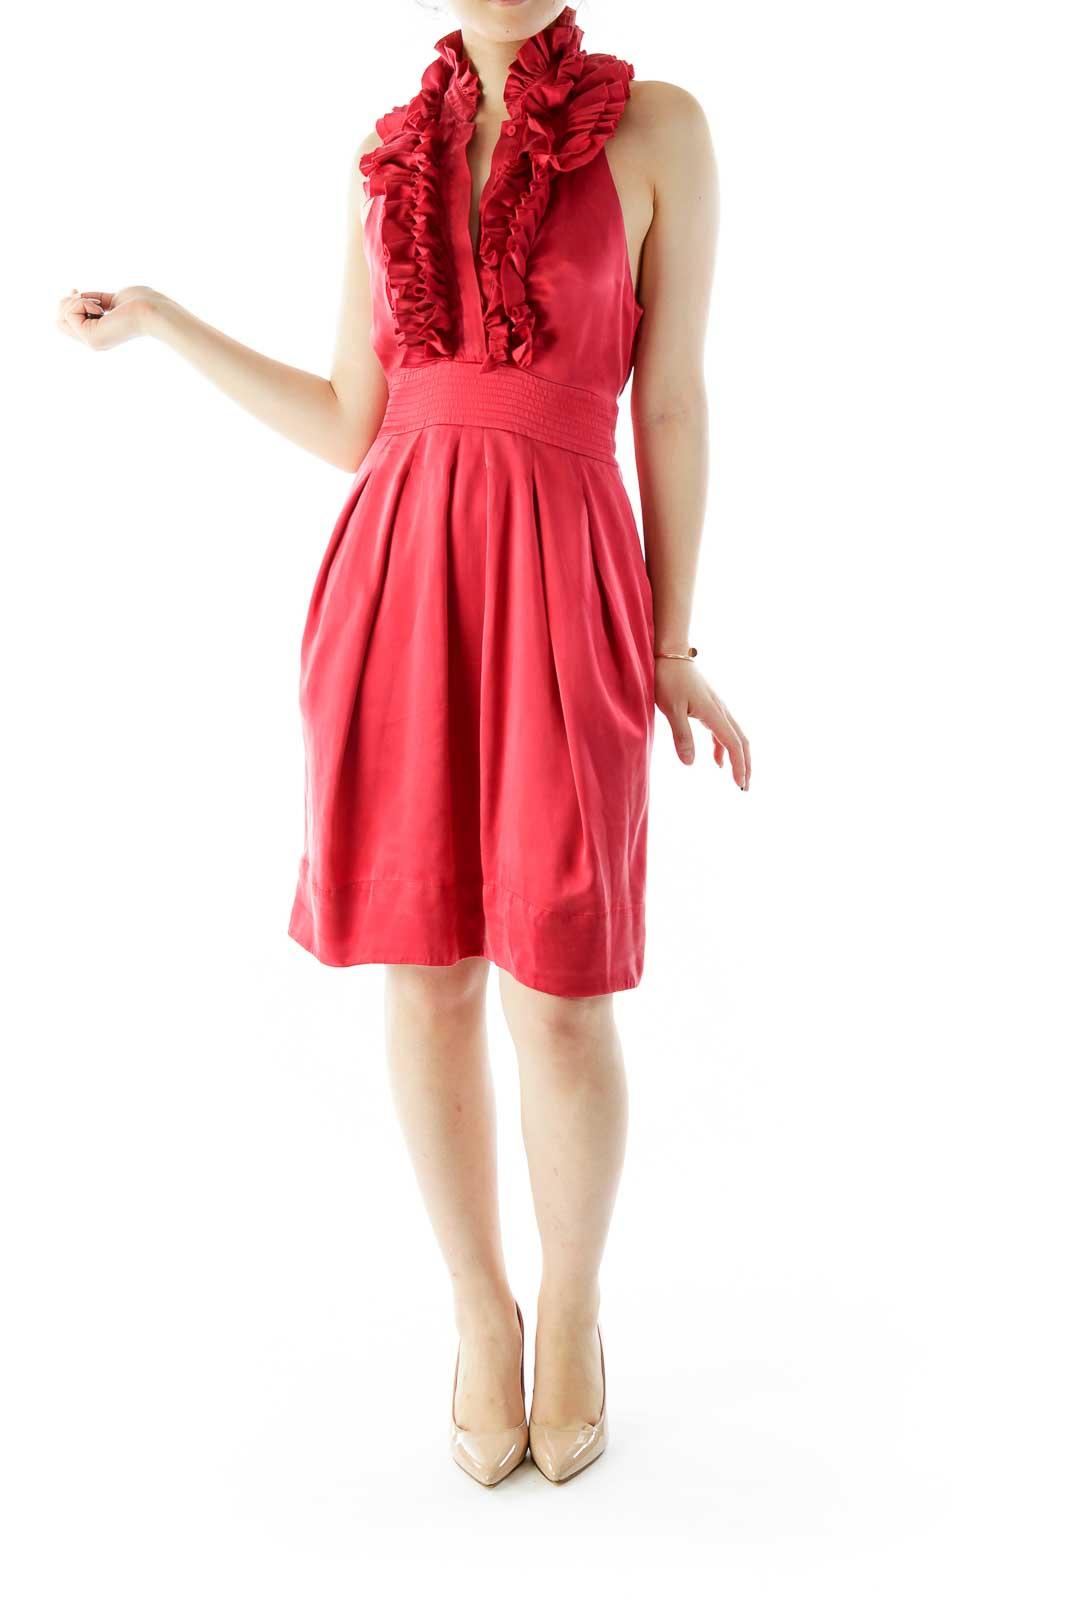 Red Ruffled Cocktail Dress